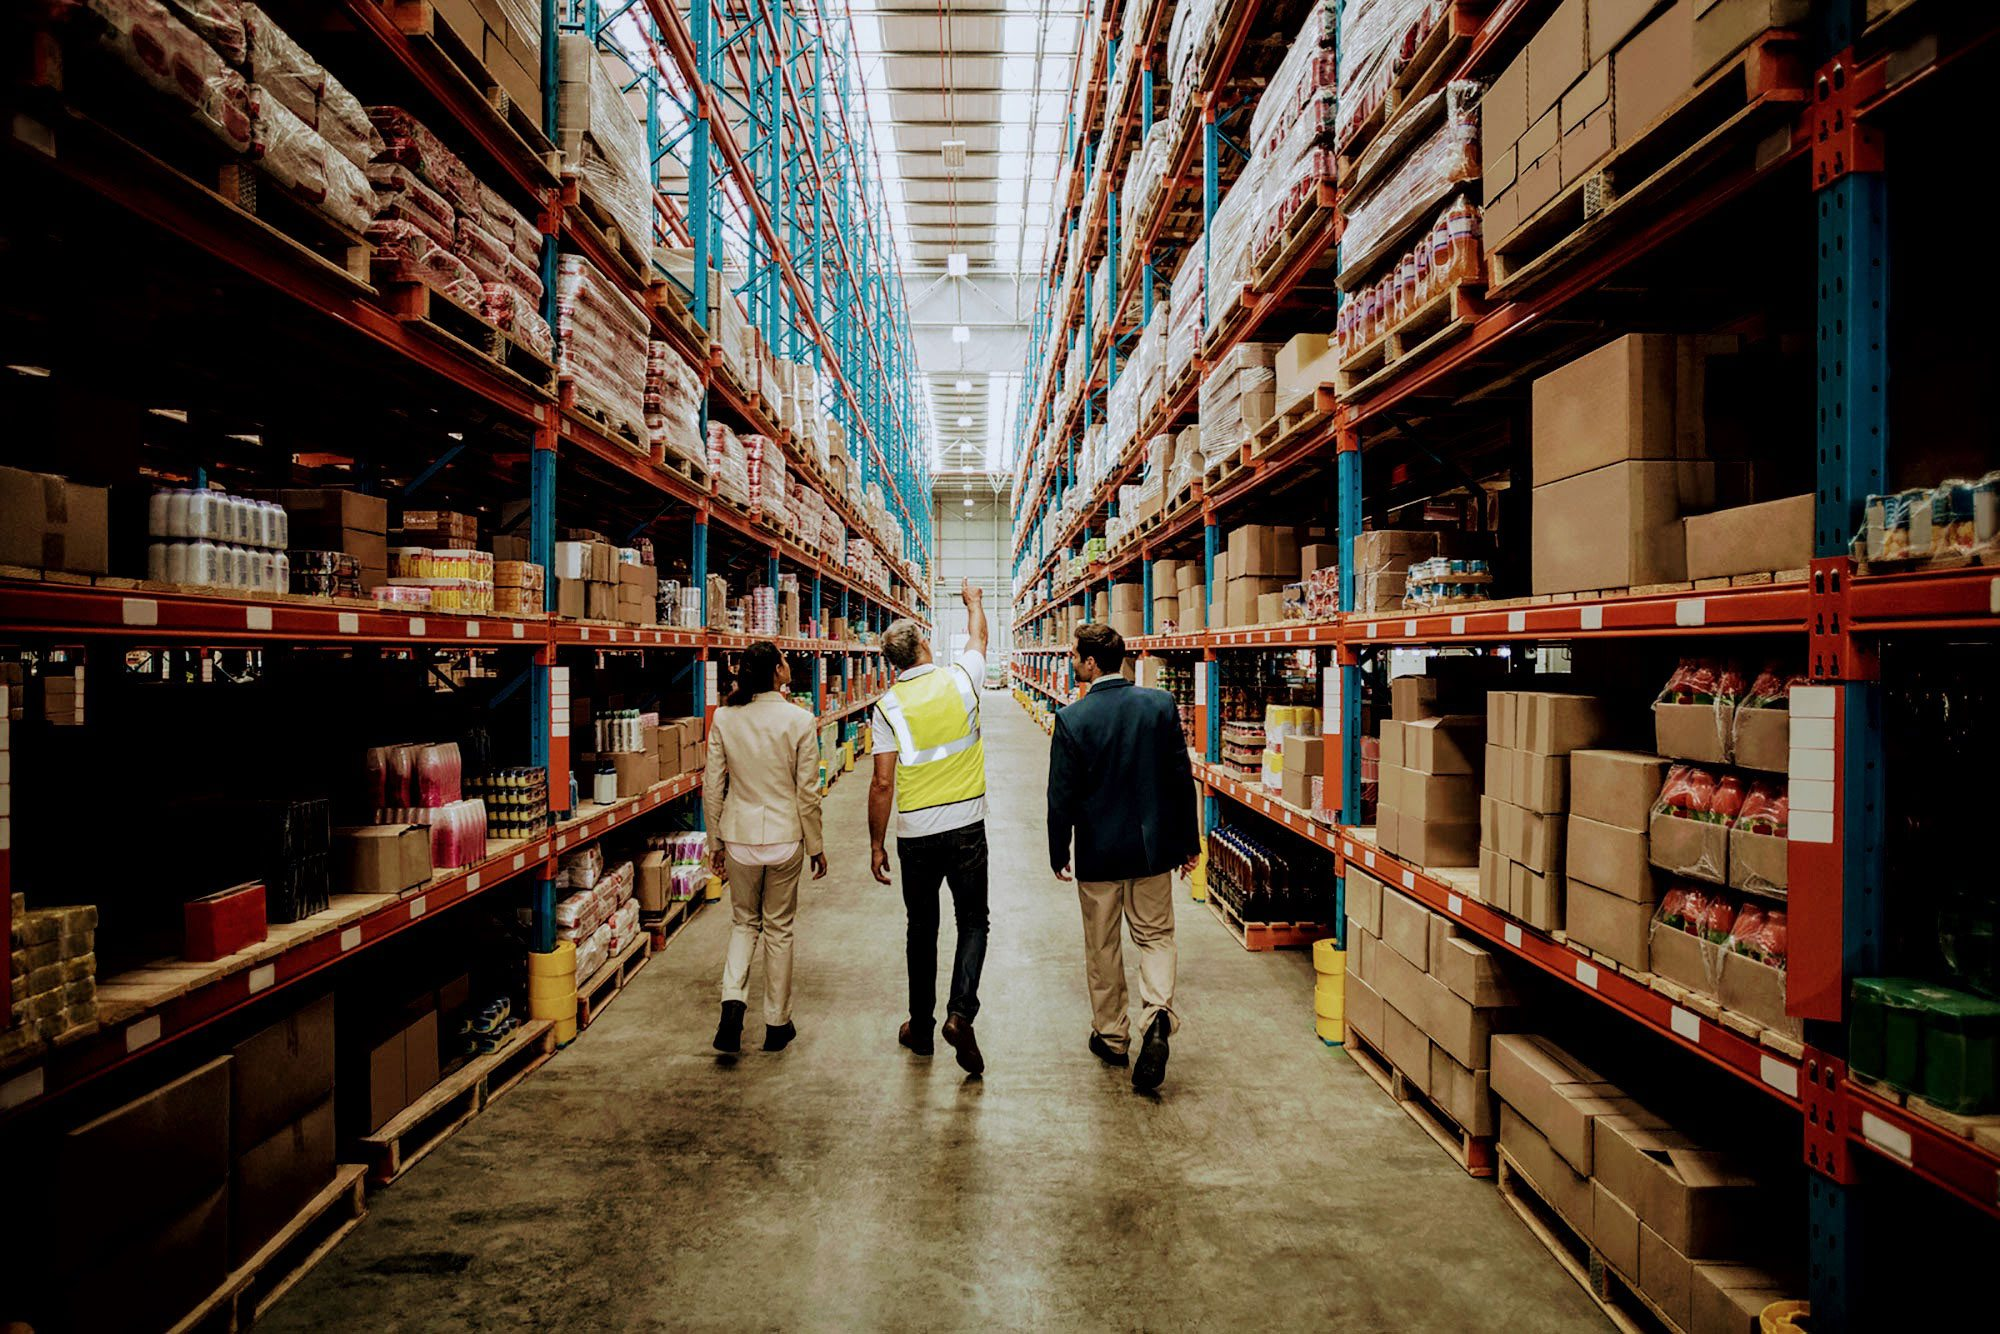 Country Innovation & Supply is a Value-Added solutions oriented partner to the manufacturing and distribution industry providing Labels, Packaging, Material Handling and Printing services with over $2.5 million in Documented Cost Savings